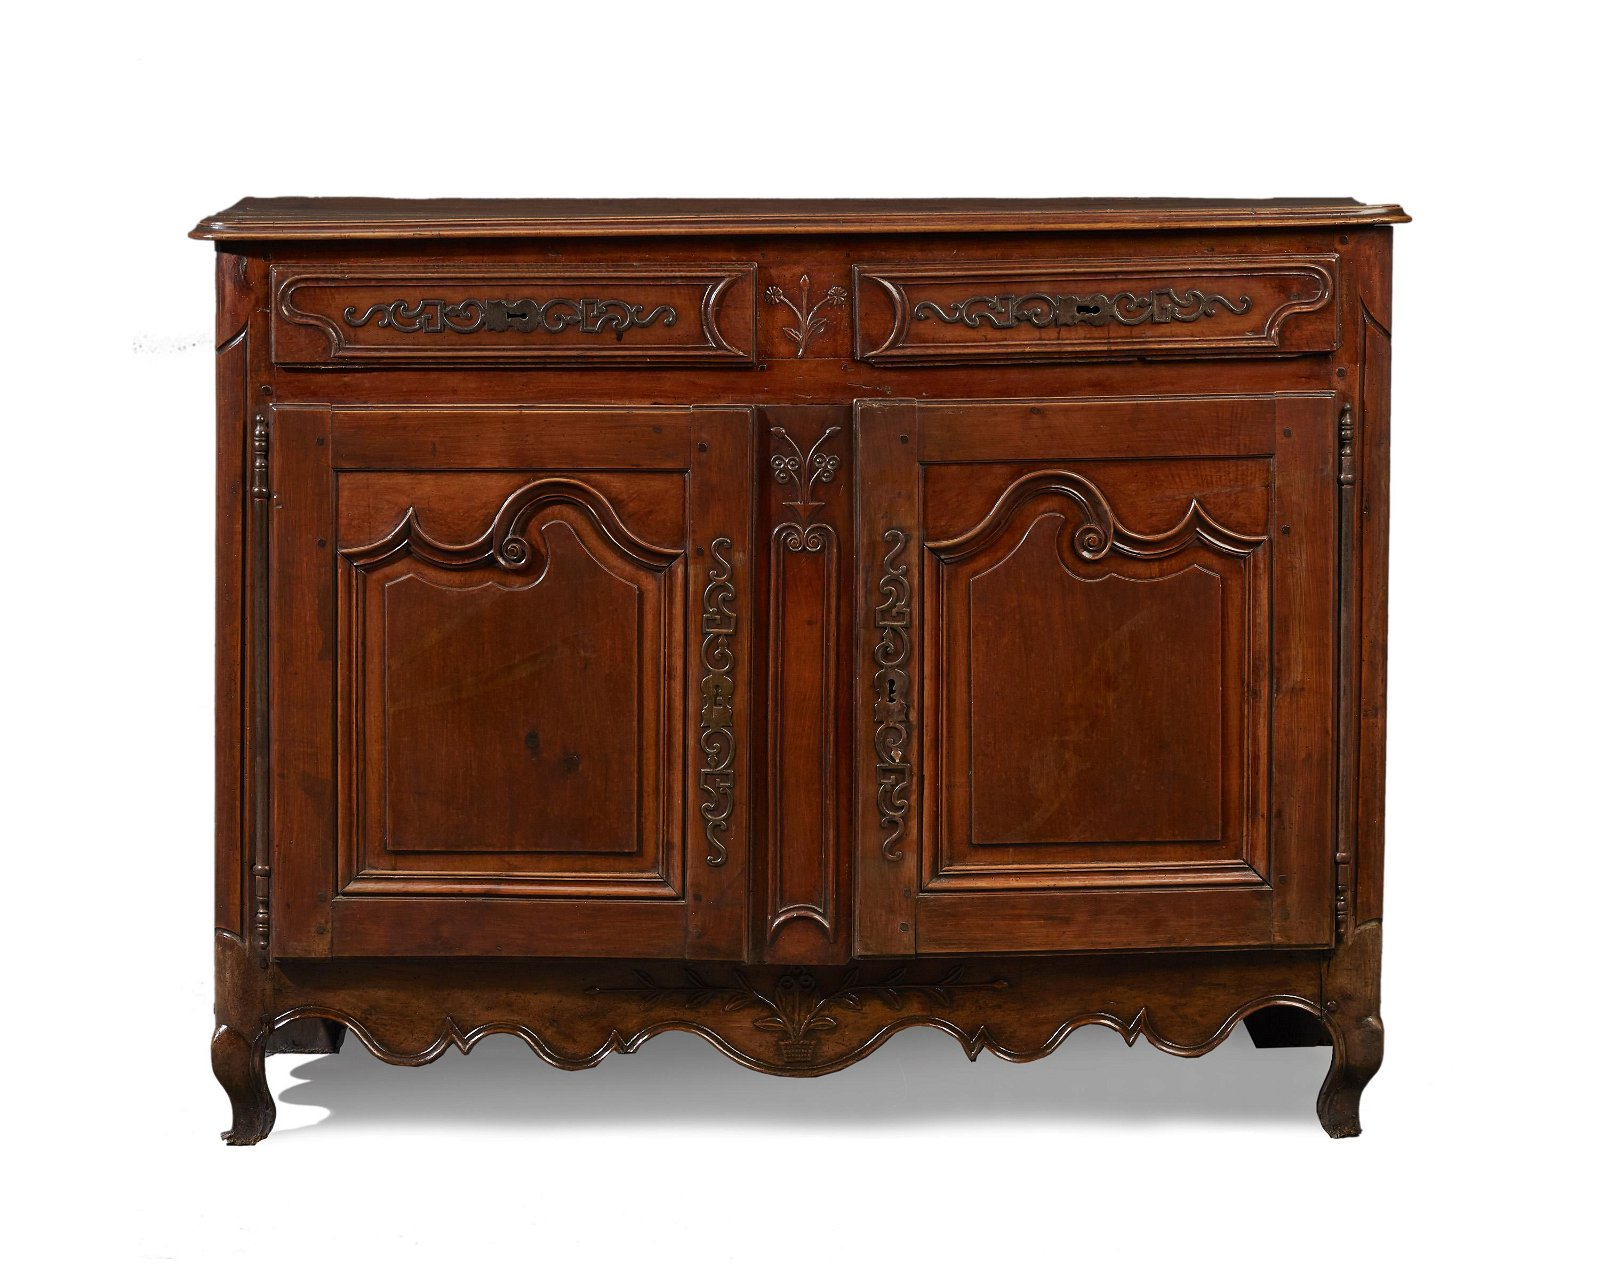 A French Provincial walnut two-door buffet